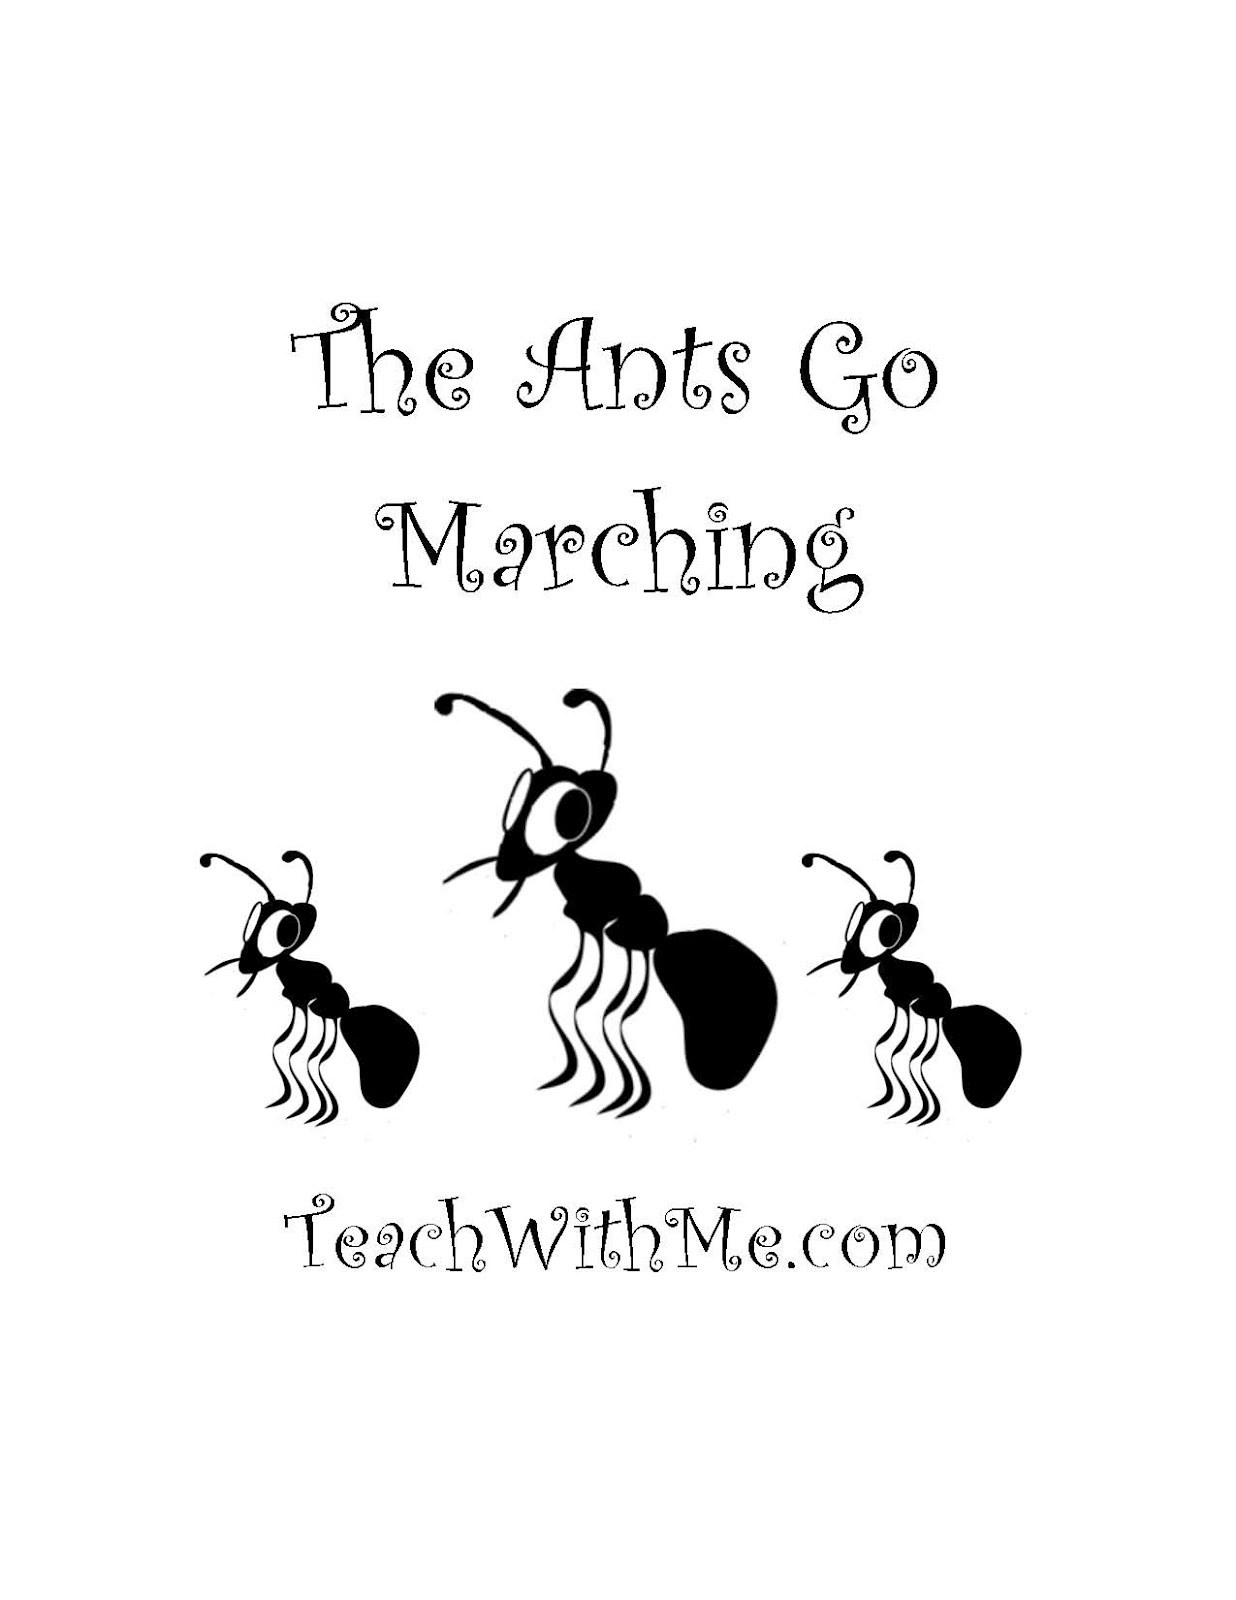 Free Marching Ants Cliparts, Download Free Clip Art, Free.